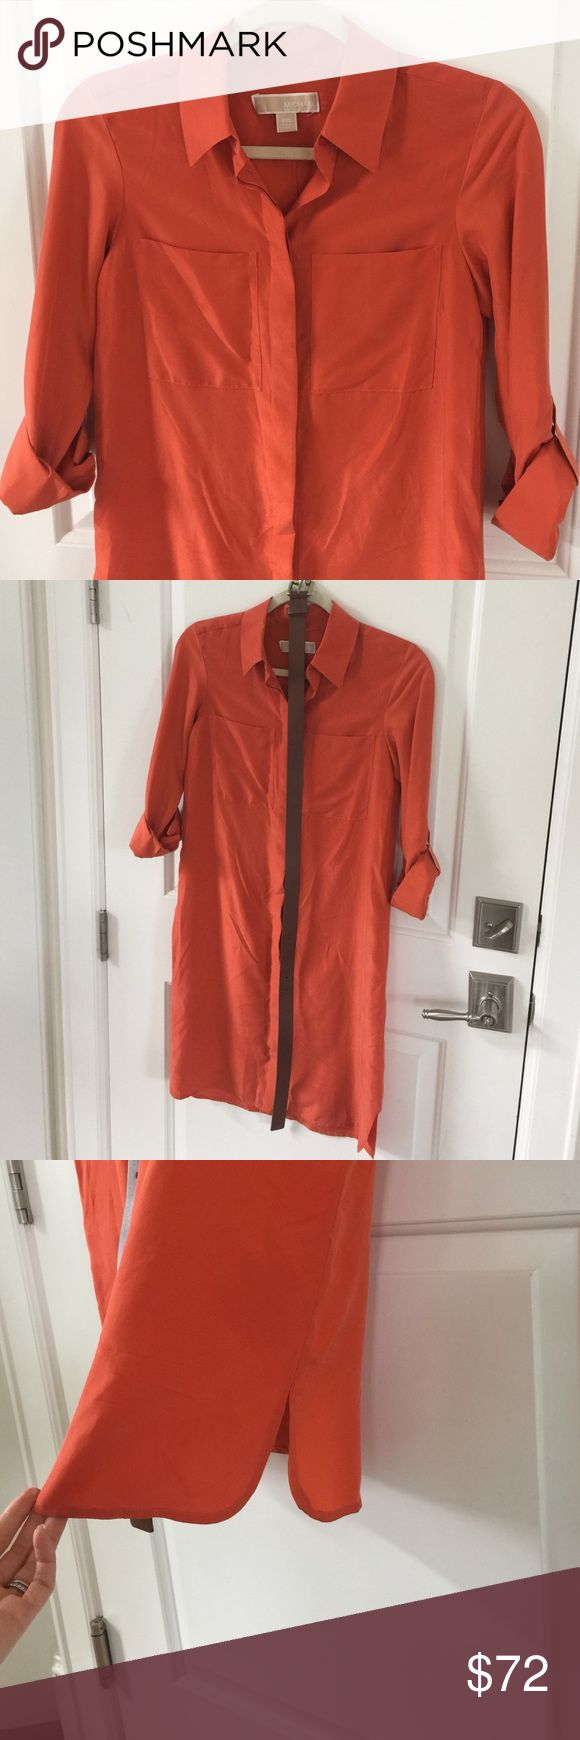 Michael Kors 100% silk pocket shirt dress Beautiful orange MICHAEL Michael Kors ultra luxurious silk shirt dress! Excellent condition. I absolutely adore this dress but I am pregnant with baby no. 2 and don't see wearing it anytime soon. I especially don't want to wear a high quality fabric around kids in fear it would be ruined. This dress is perfect for all seasons! Wear it with wedges in the Spring and Summer and boots in the fall and winter! I purchased the belt separately to go with it…